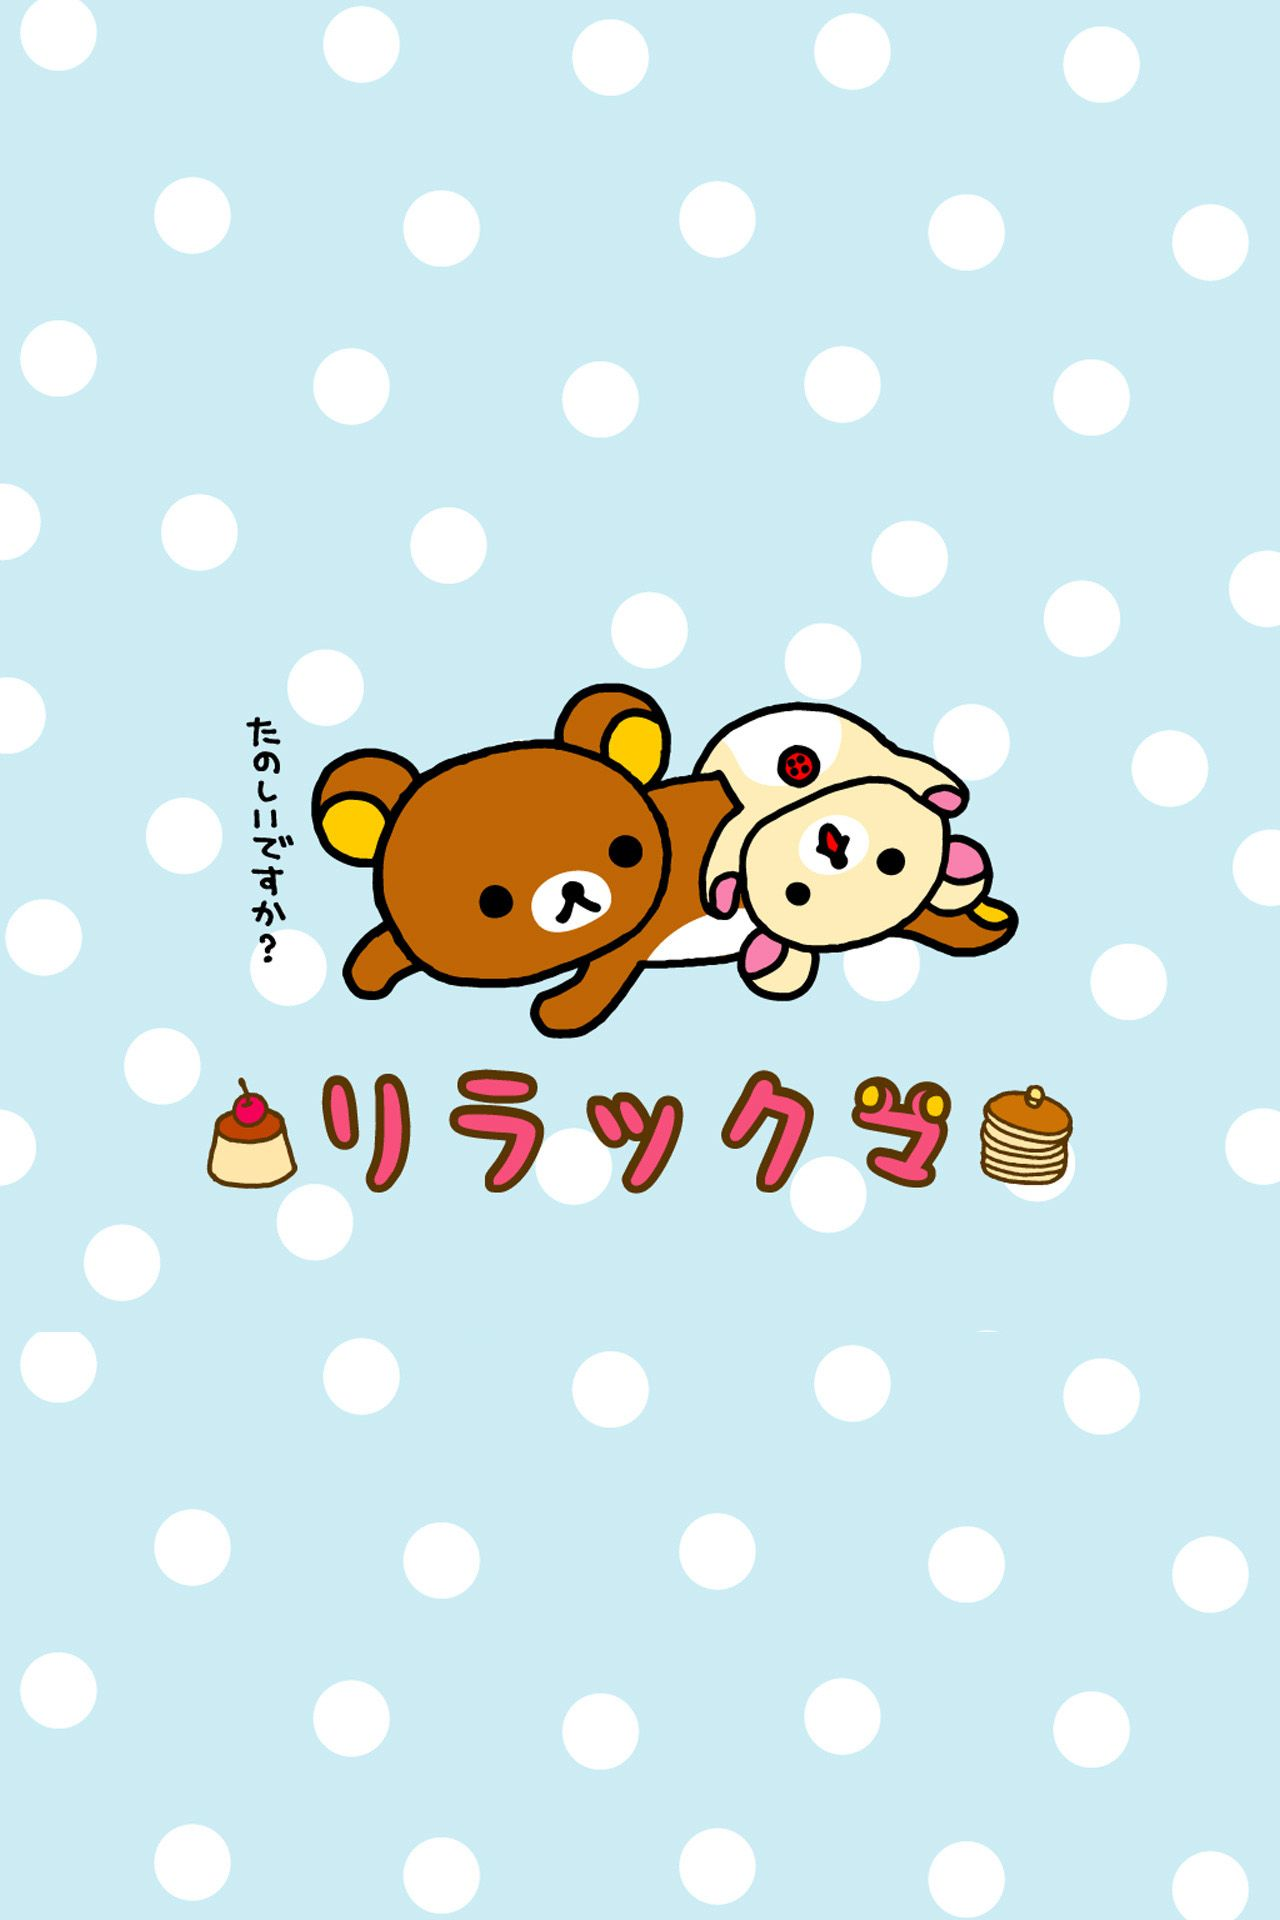 Rilakkuma iphone wallpaper tumblr - Rilakkuma Wallpapers Free For Iphone And Galaxy From Lollimobile